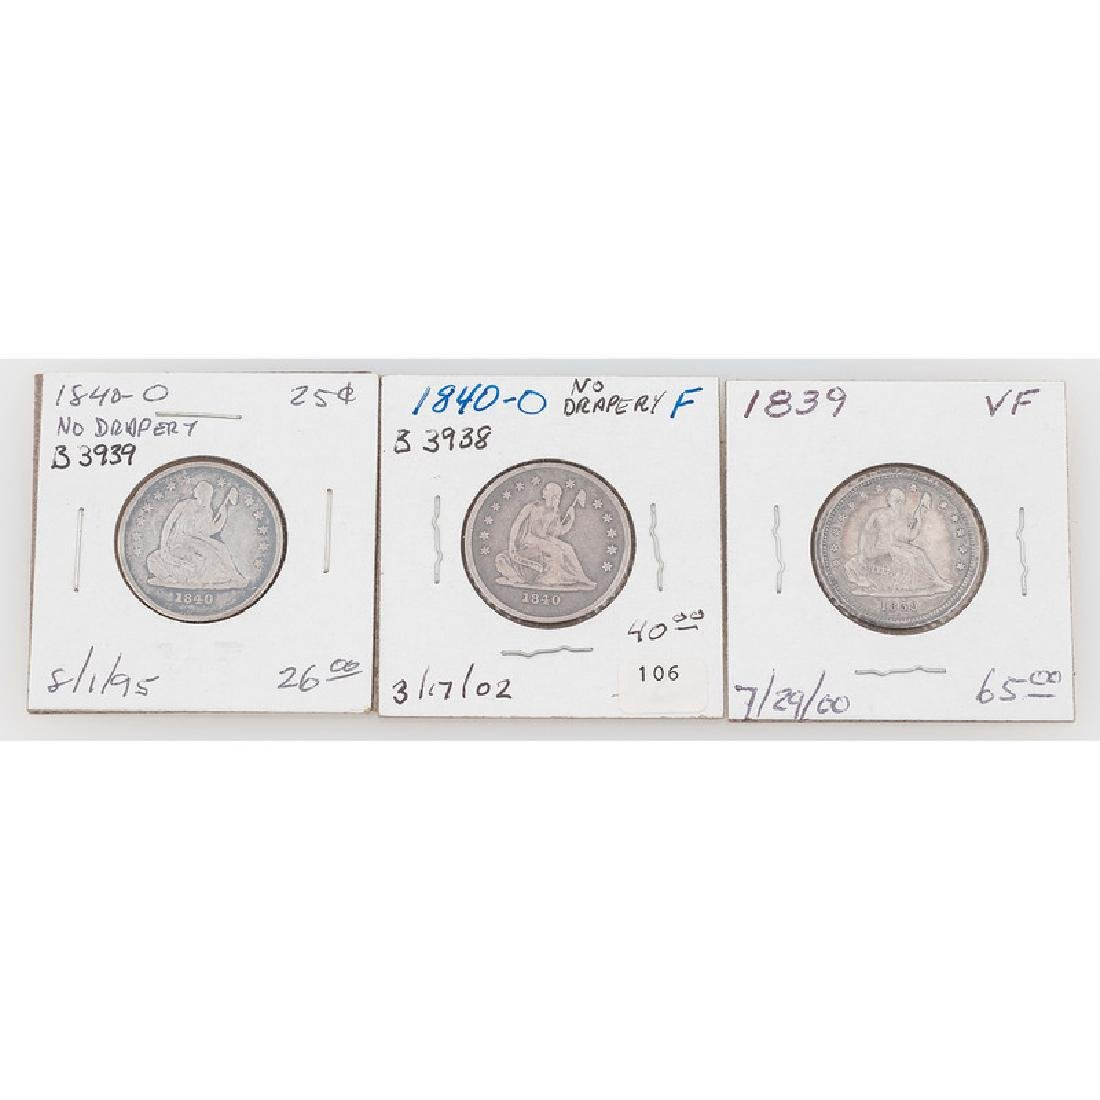 Liberty Seated Quarter Dollars 1839-1840